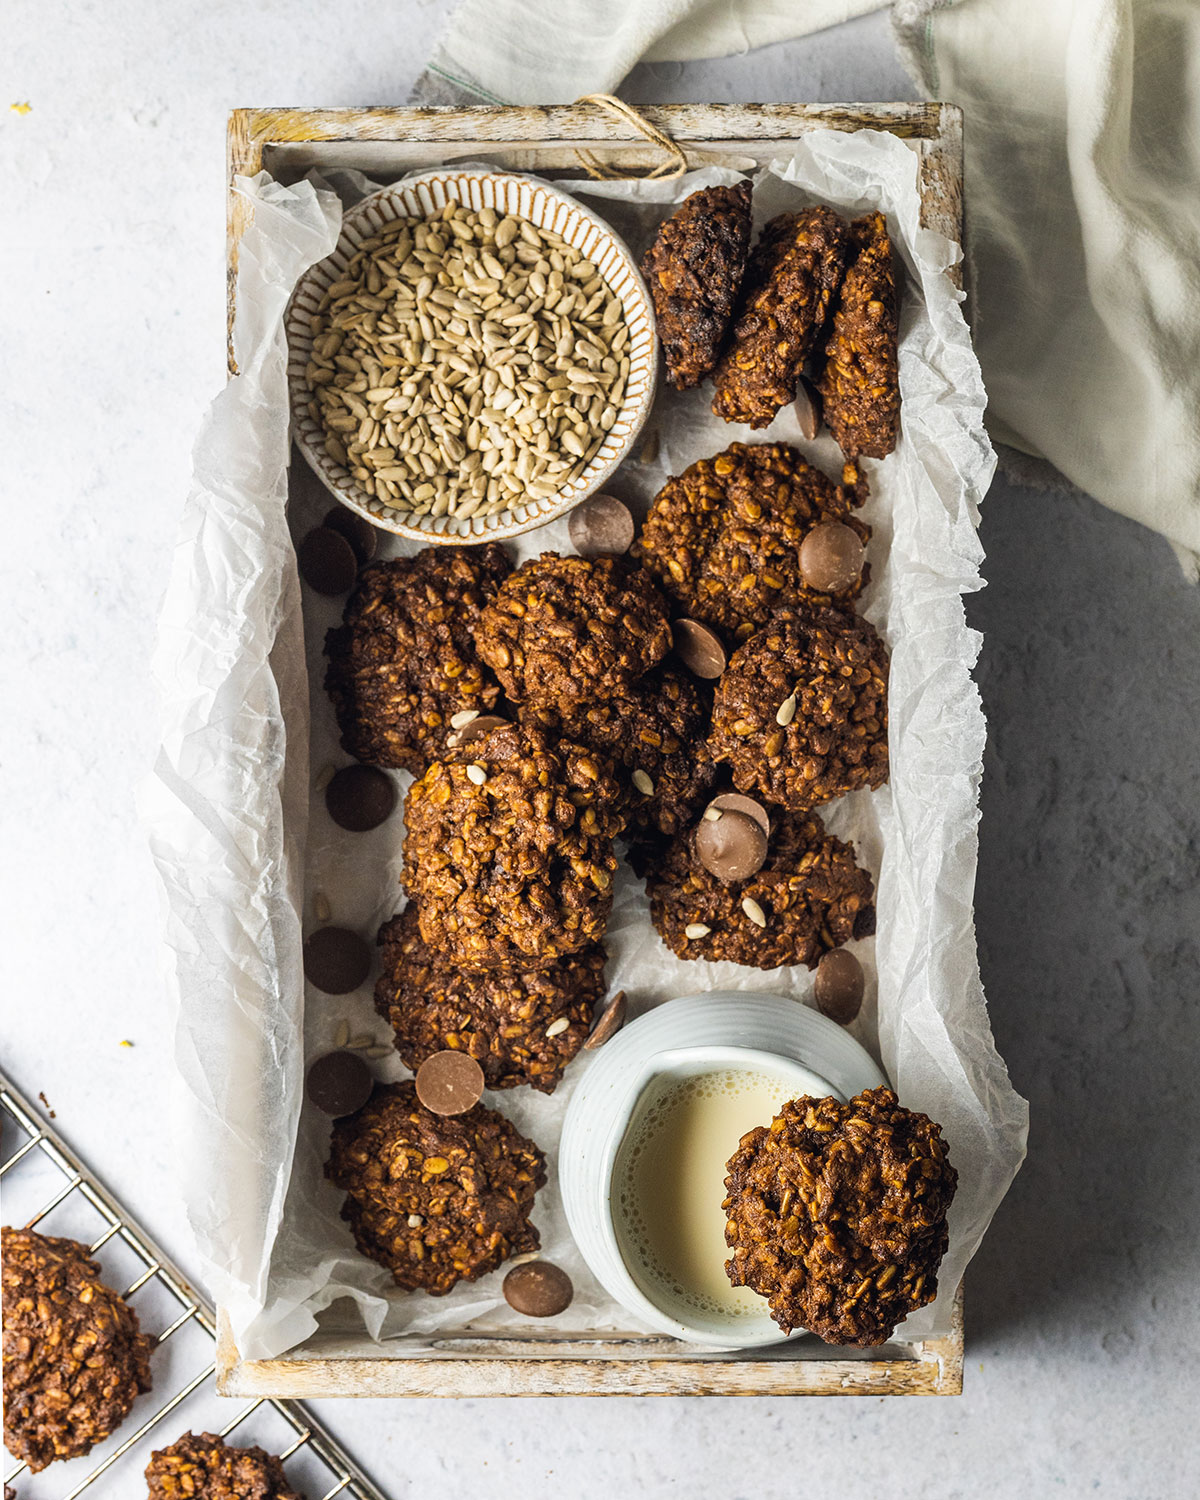 Vegan Sunflower Seed Cookies Recipe made with oats and banana (plantbased and gluten free)